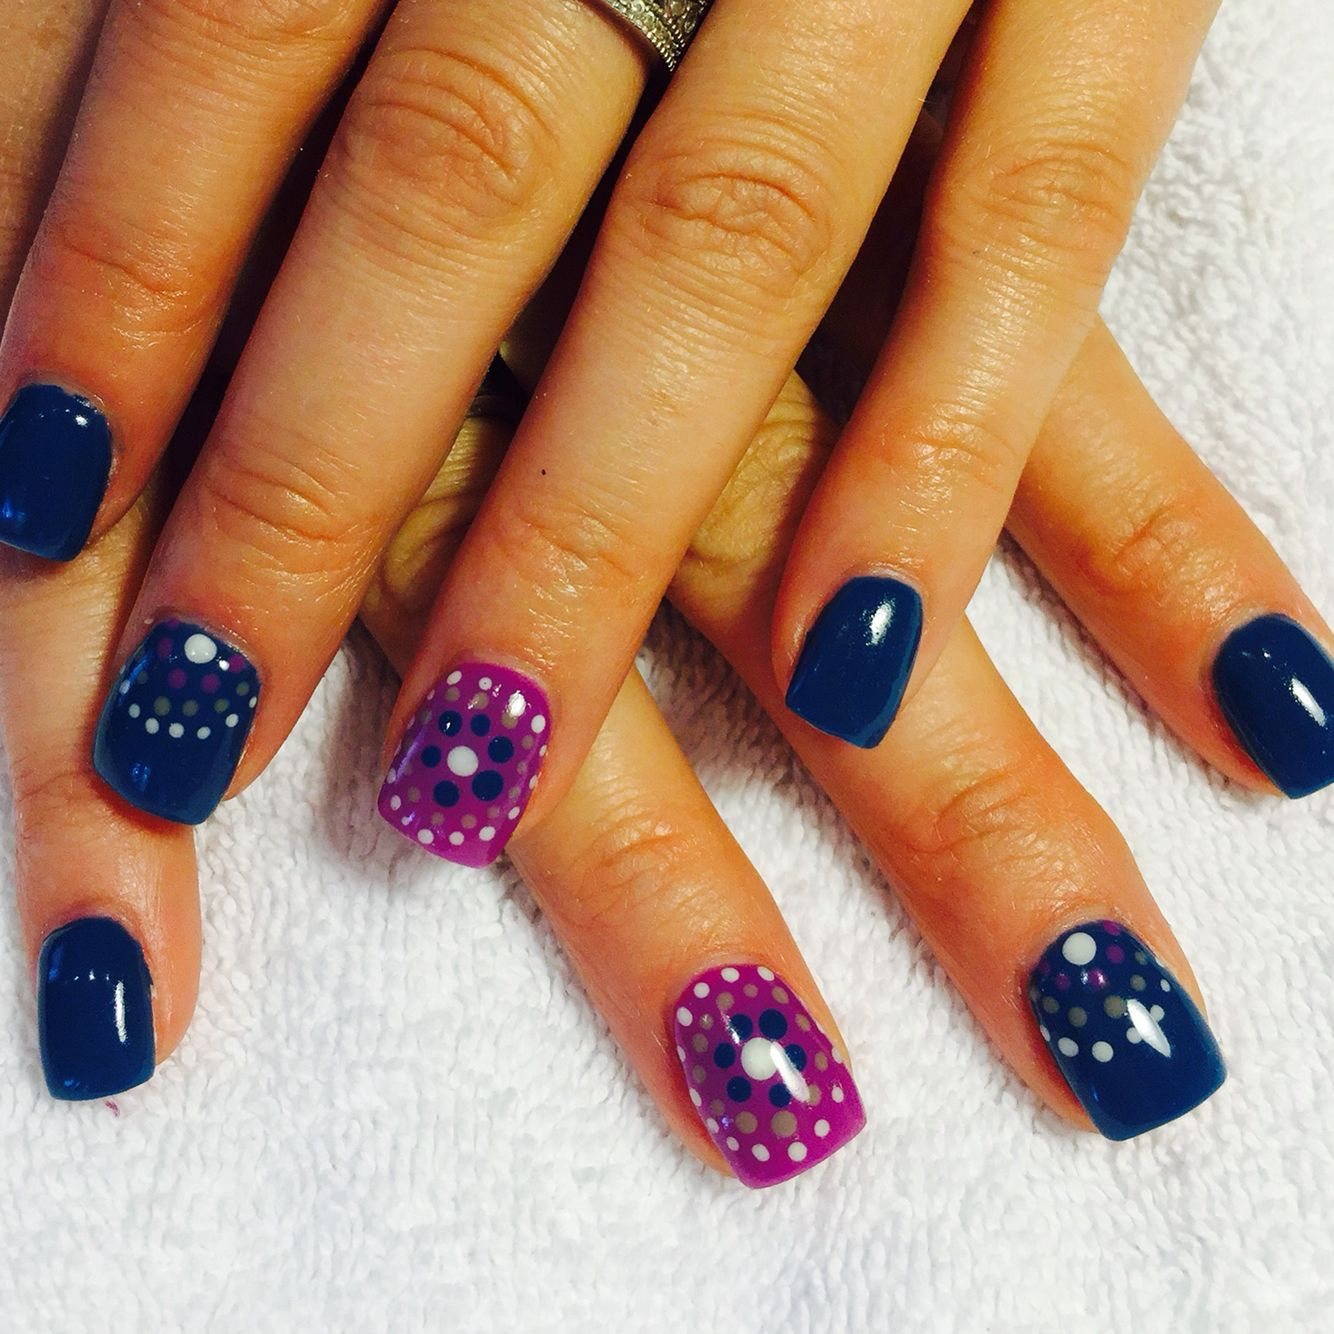 Pinterest inspired gel nails | Nails by...Me! | Pinterest